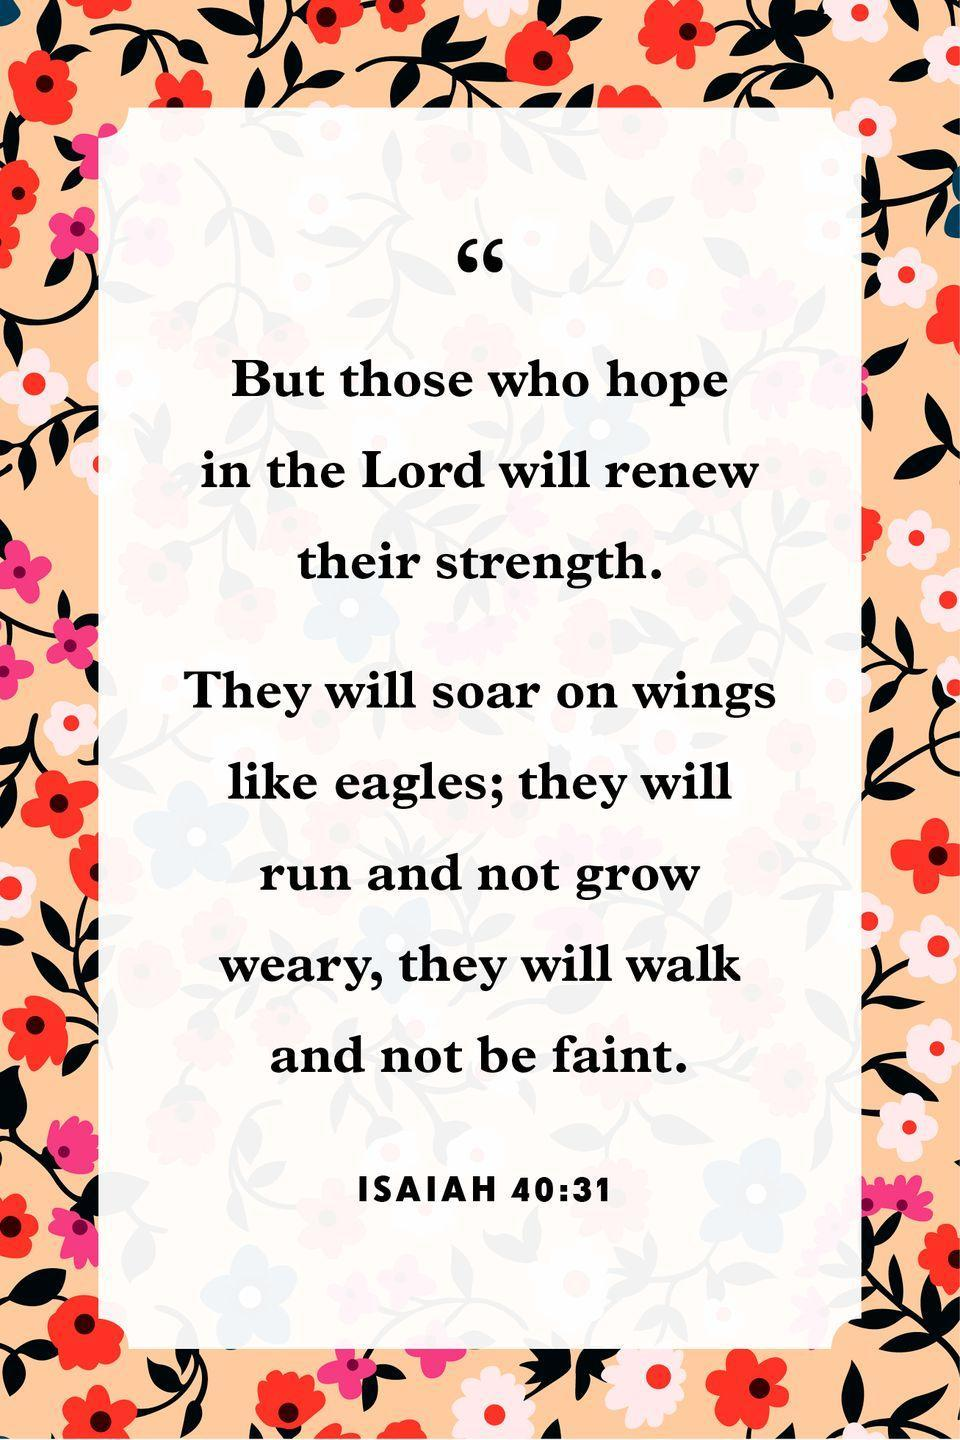 "<p>""But those who hope in the Lord<br>will renew their strength.<br><br>They will soar on wings like eagles;<br>they will run and not grow weary,<br>they will walk and not be faint.""</p>"